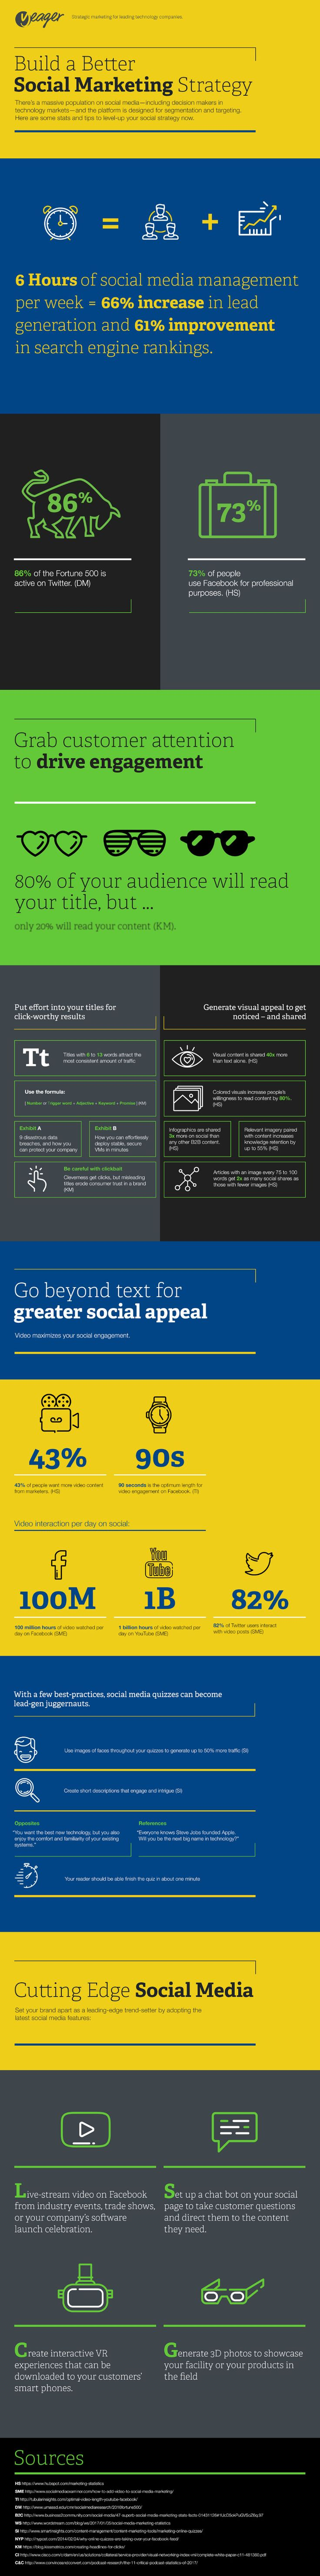 Build a Better Social Marketing Strategy | #Infographic #Marketing